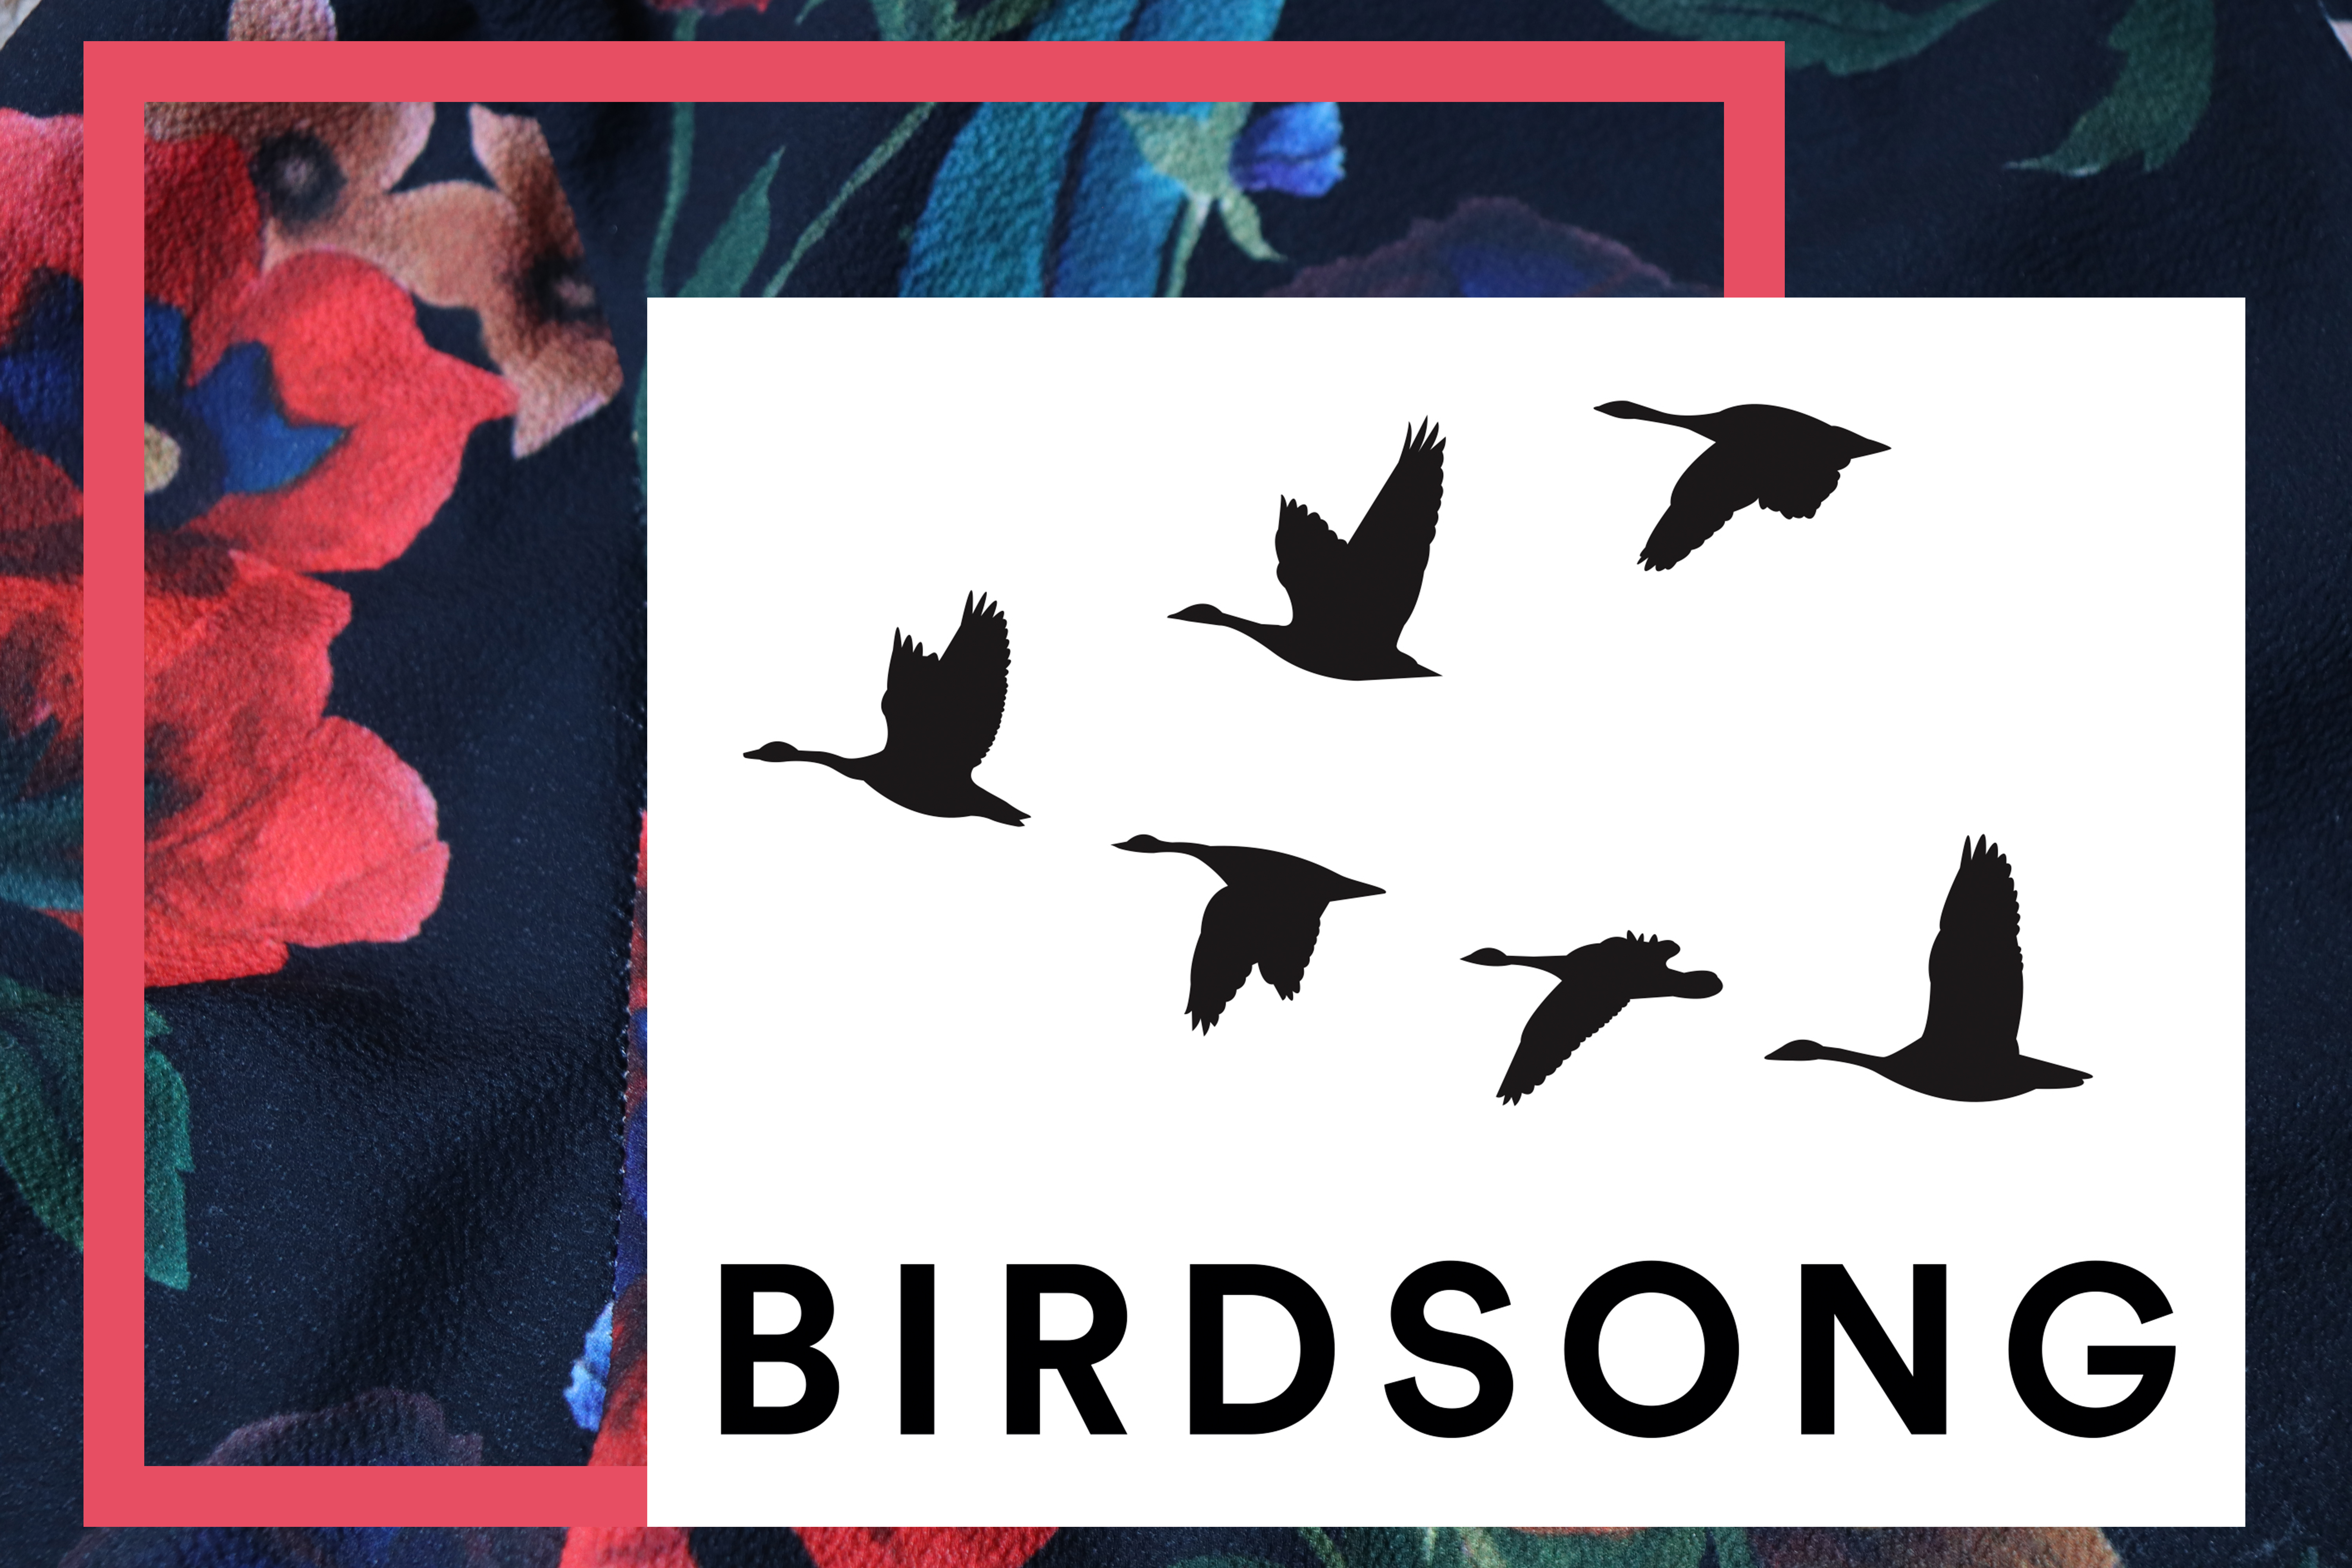 birdsong and floral.jpg